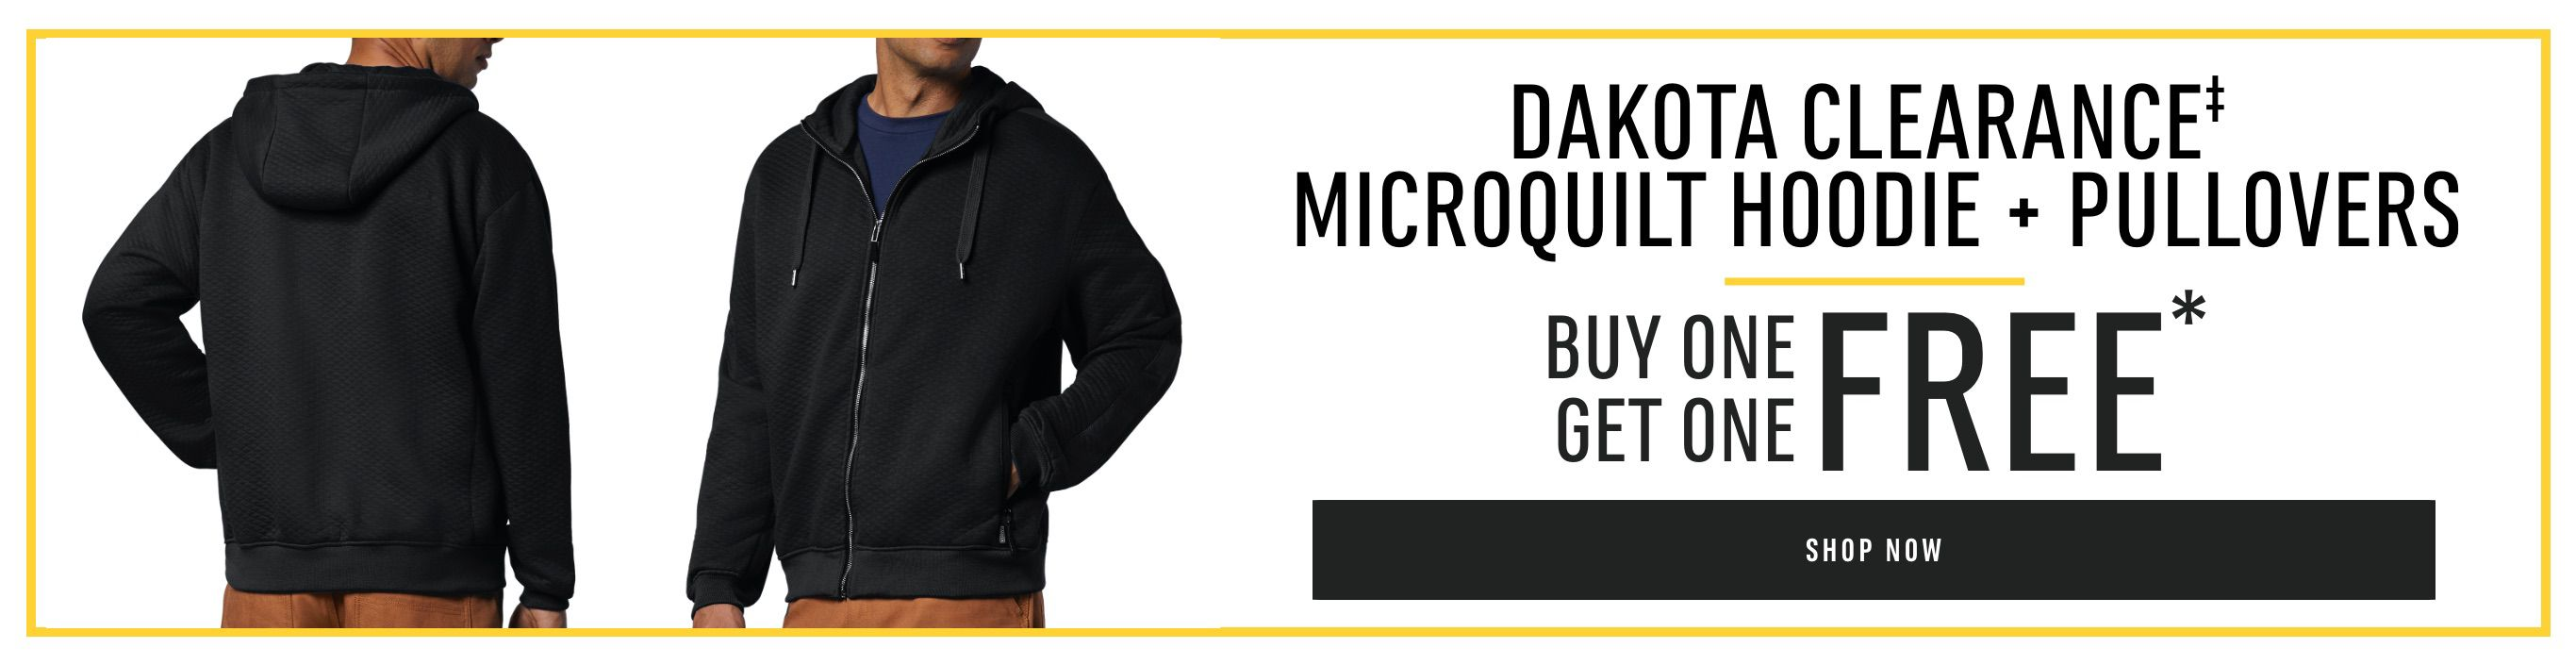 dakota clearance microquilt hoodie and pullovers bogo free